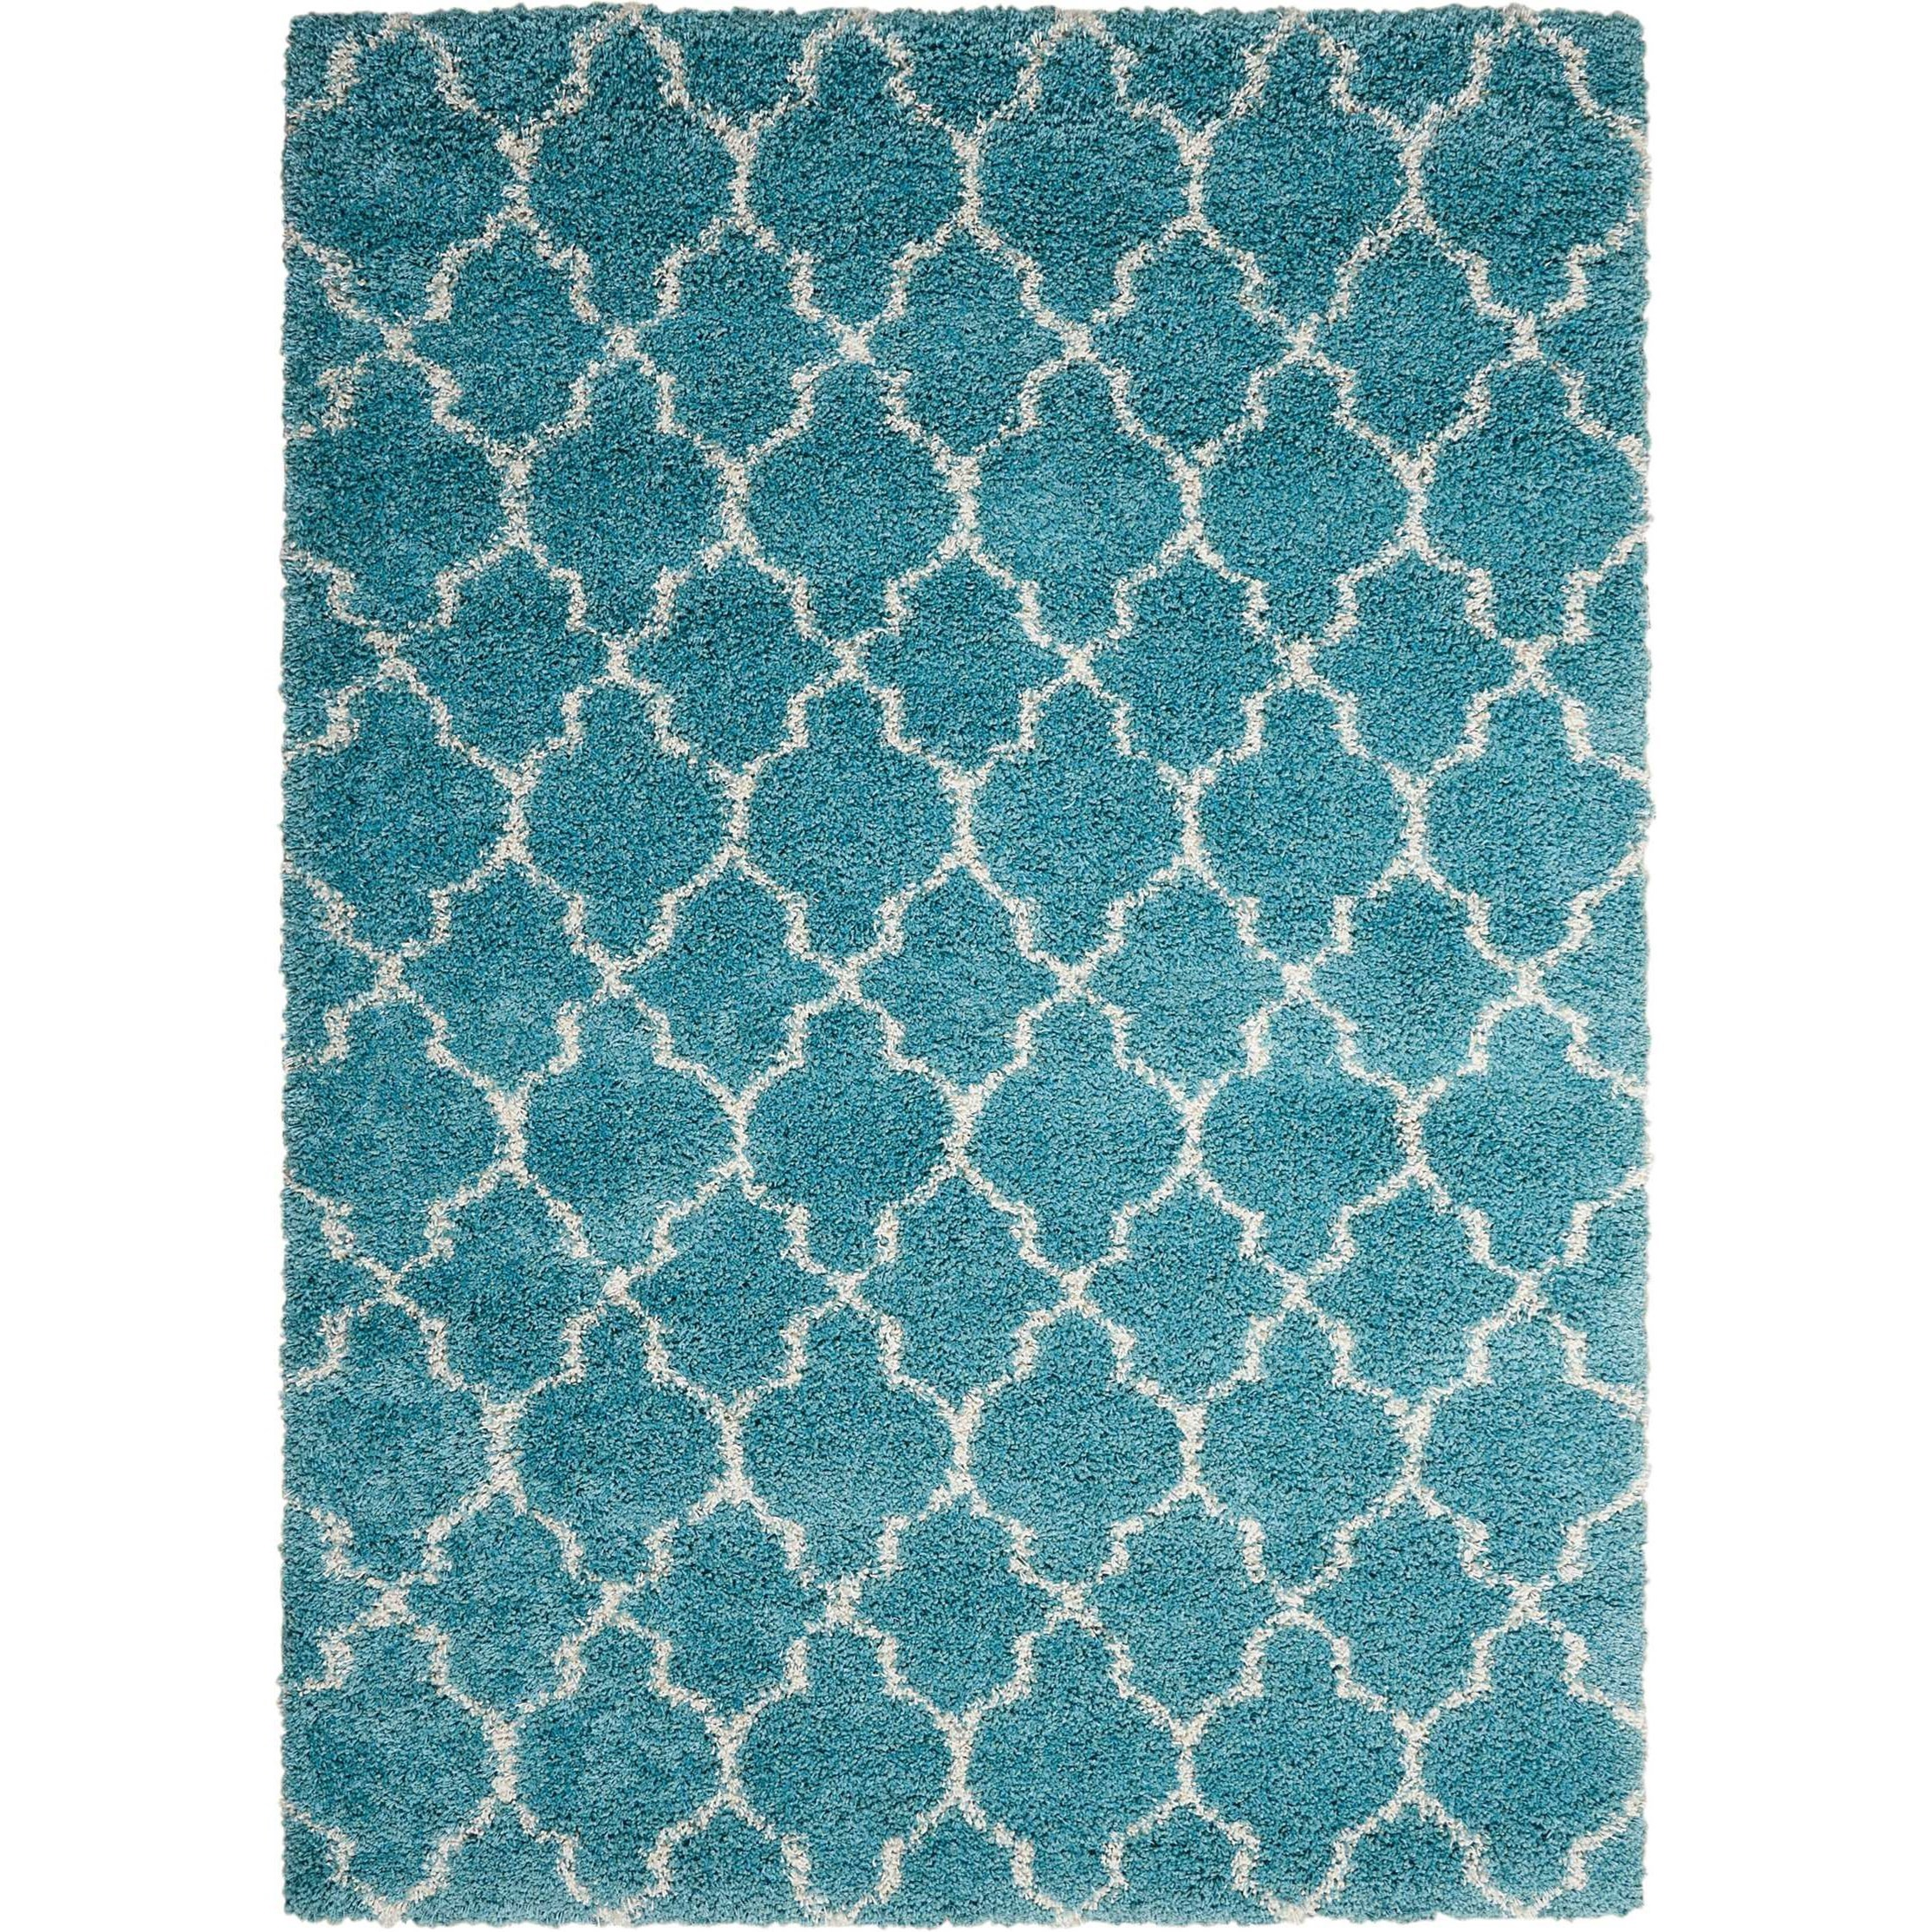 "Amore 5'3"" x 7'5"" Aqua Rectangle Rug by Nourison at Sprintz Furniture"